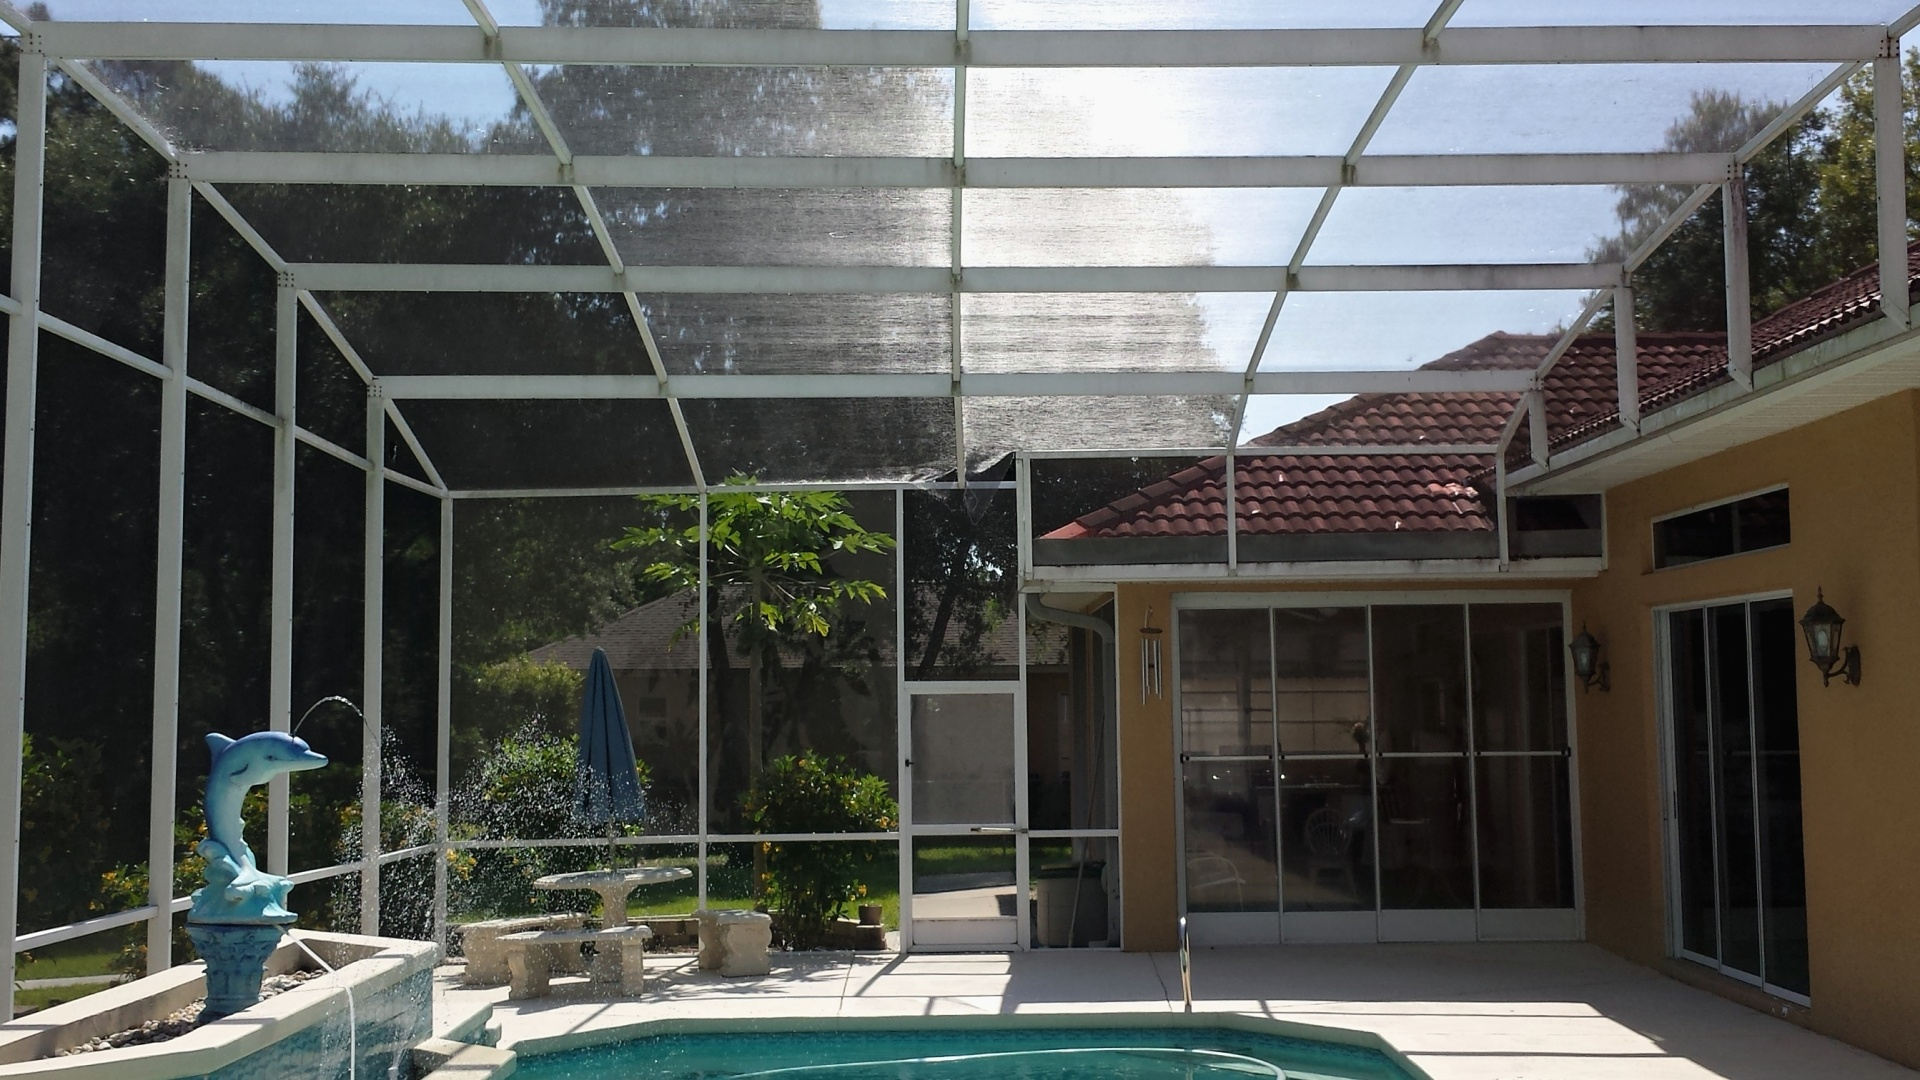 pool-screen-repair-port-orange-09-1080p.jpg